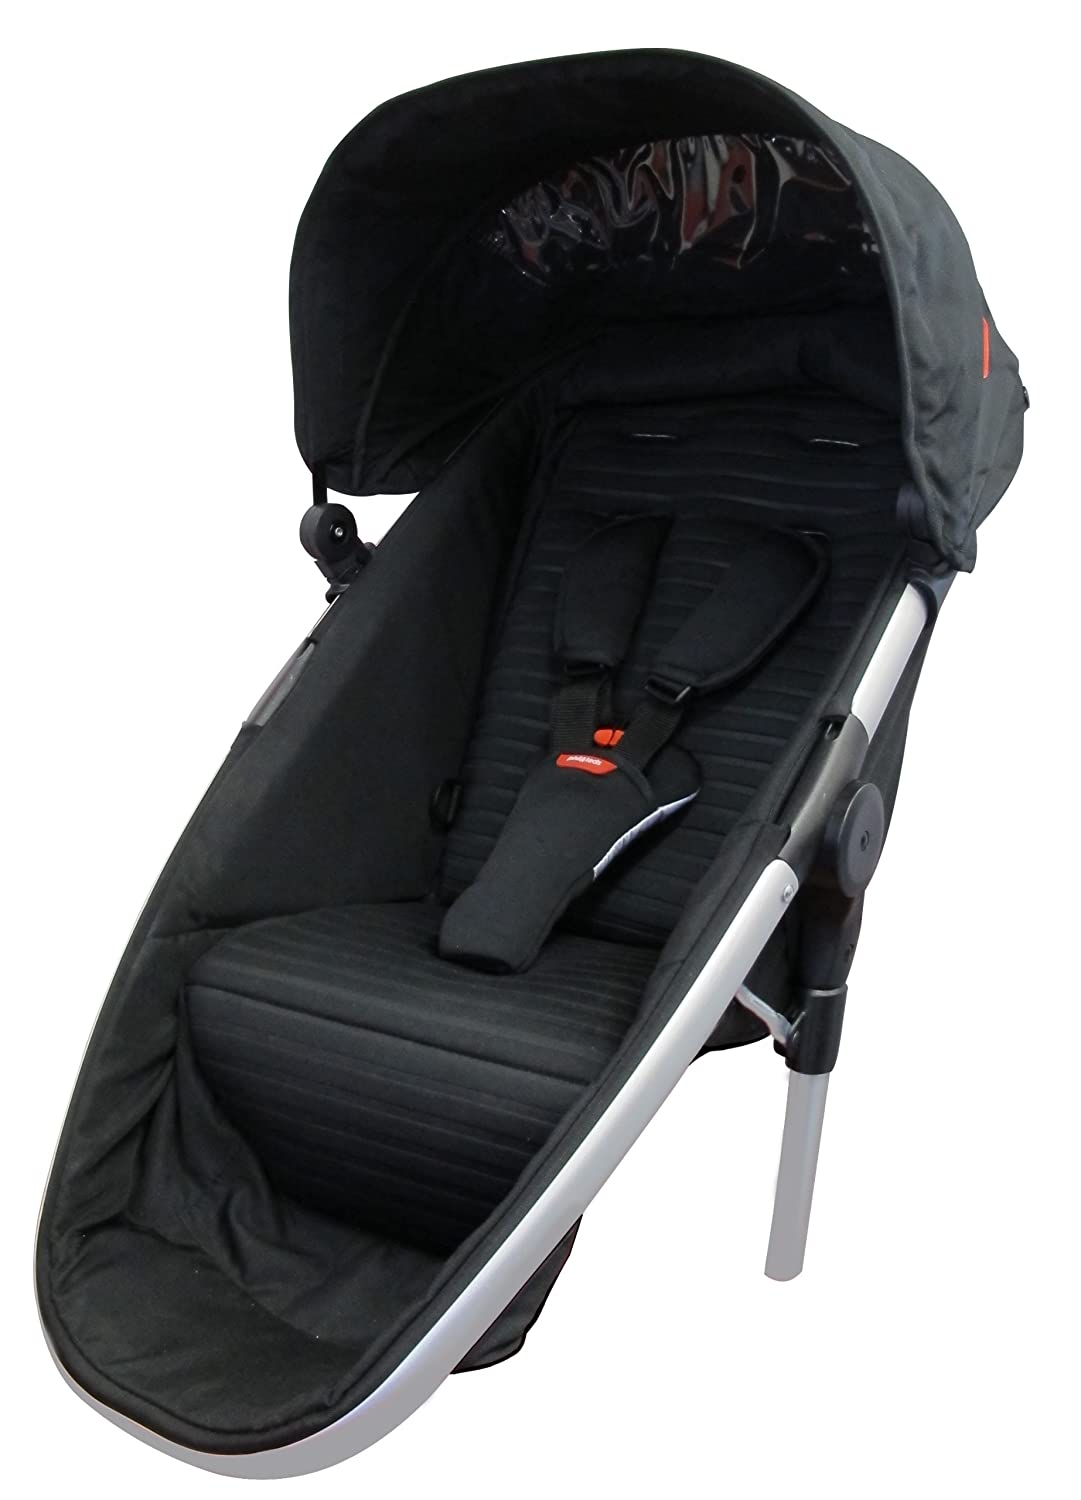 Phil Teds Promenade Doubles Kit Second Seat Black